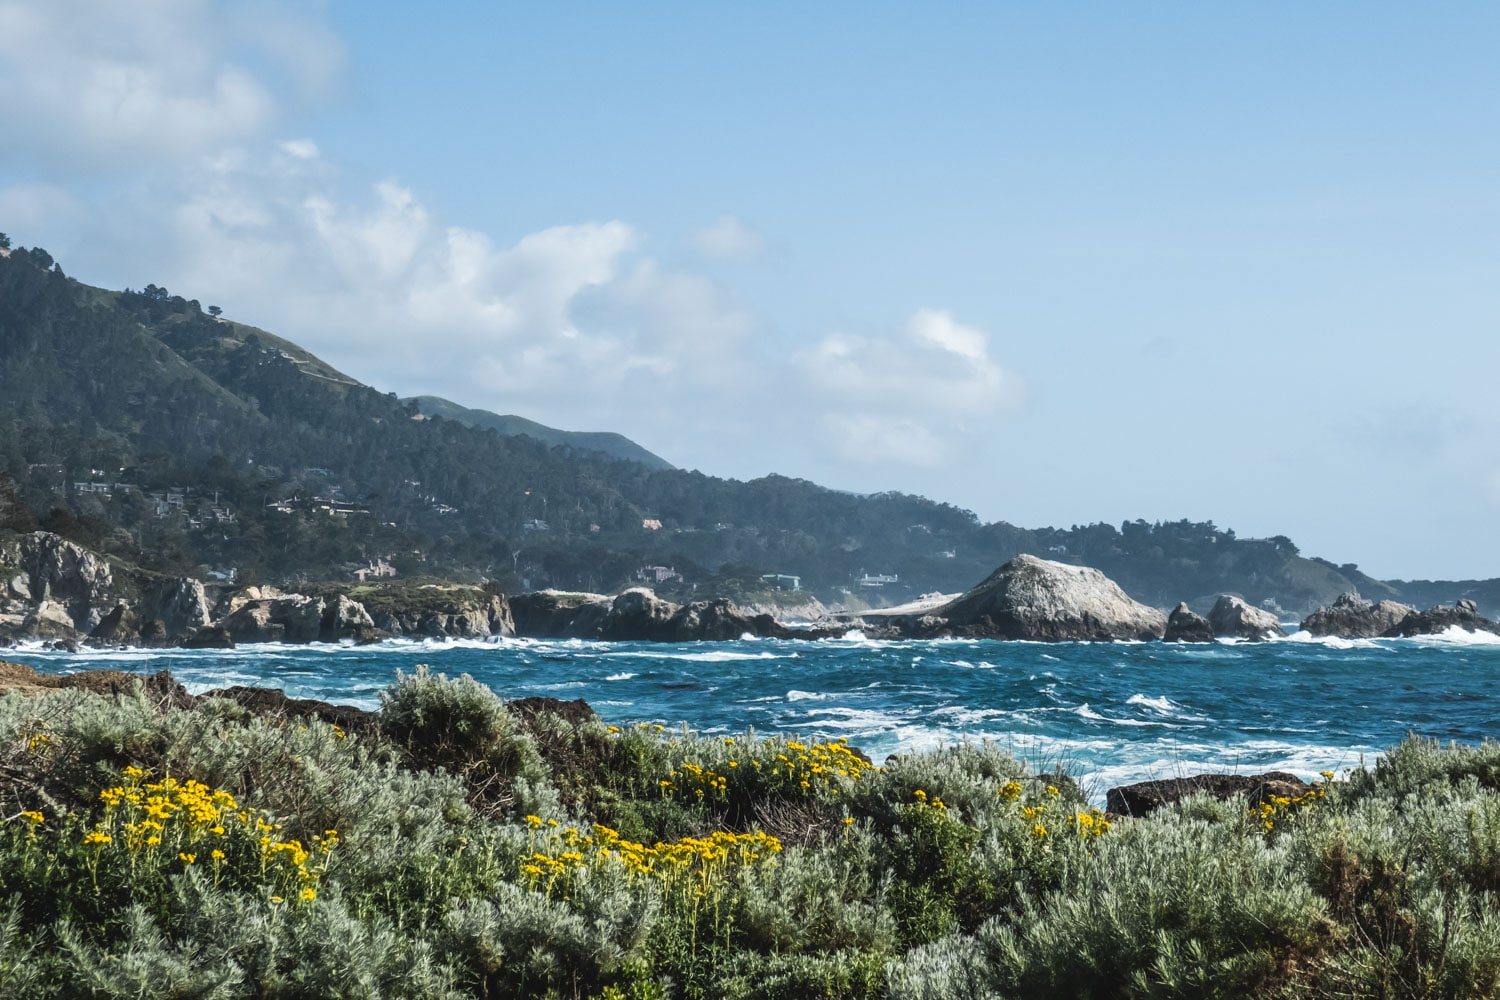 Point lobos natural reserve, californie, highway 1